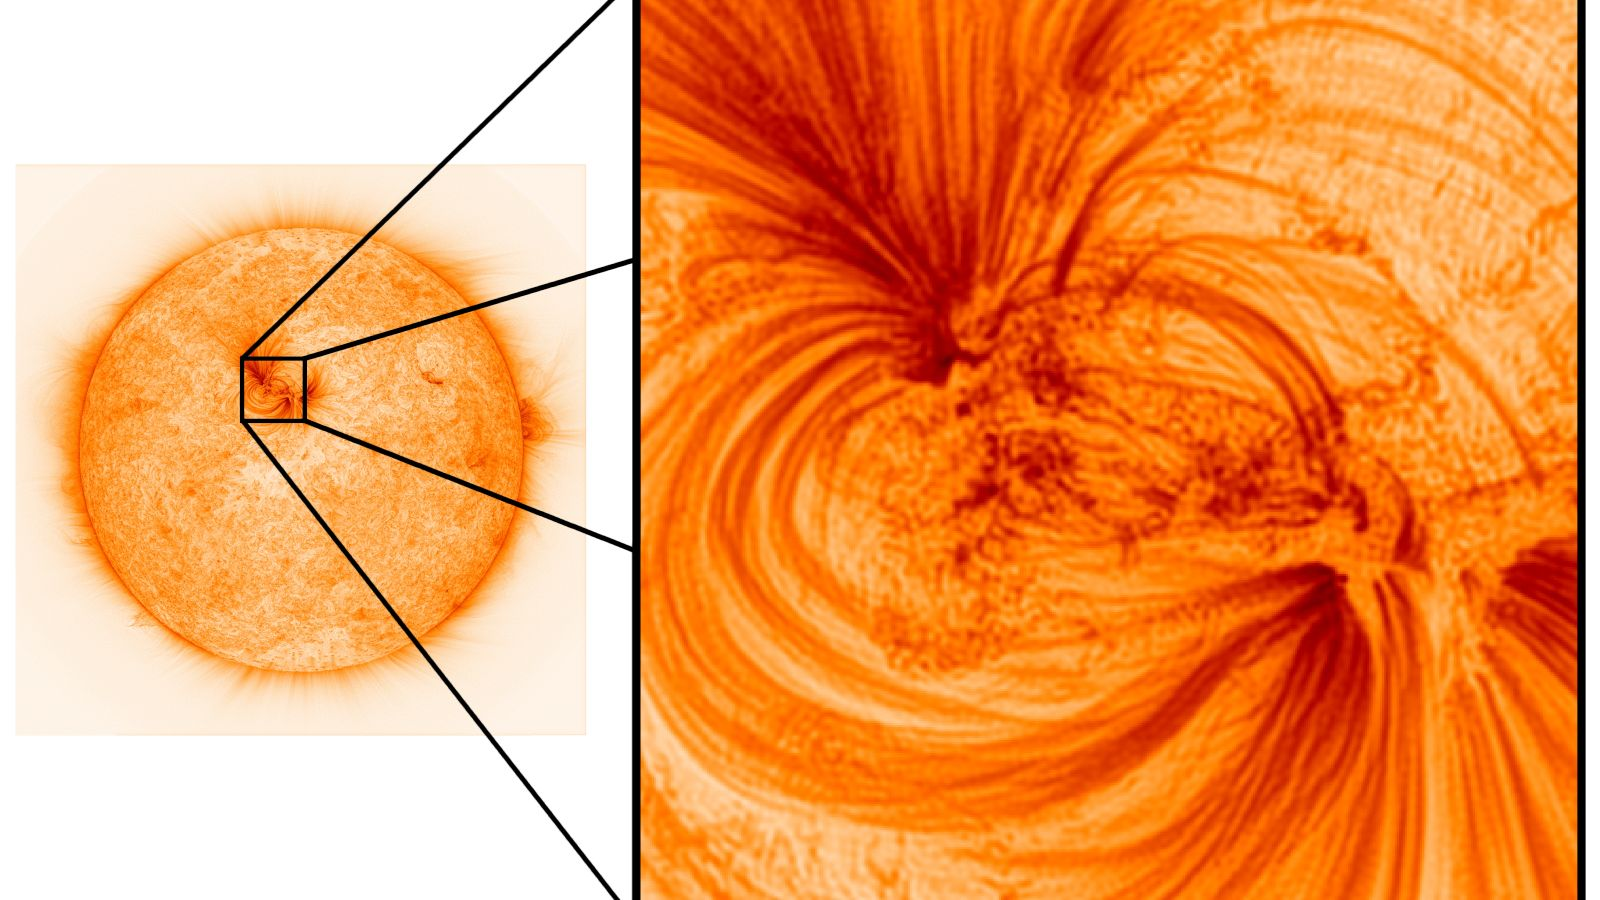 Highest Ever Resolution Images Of The Sun Revealed